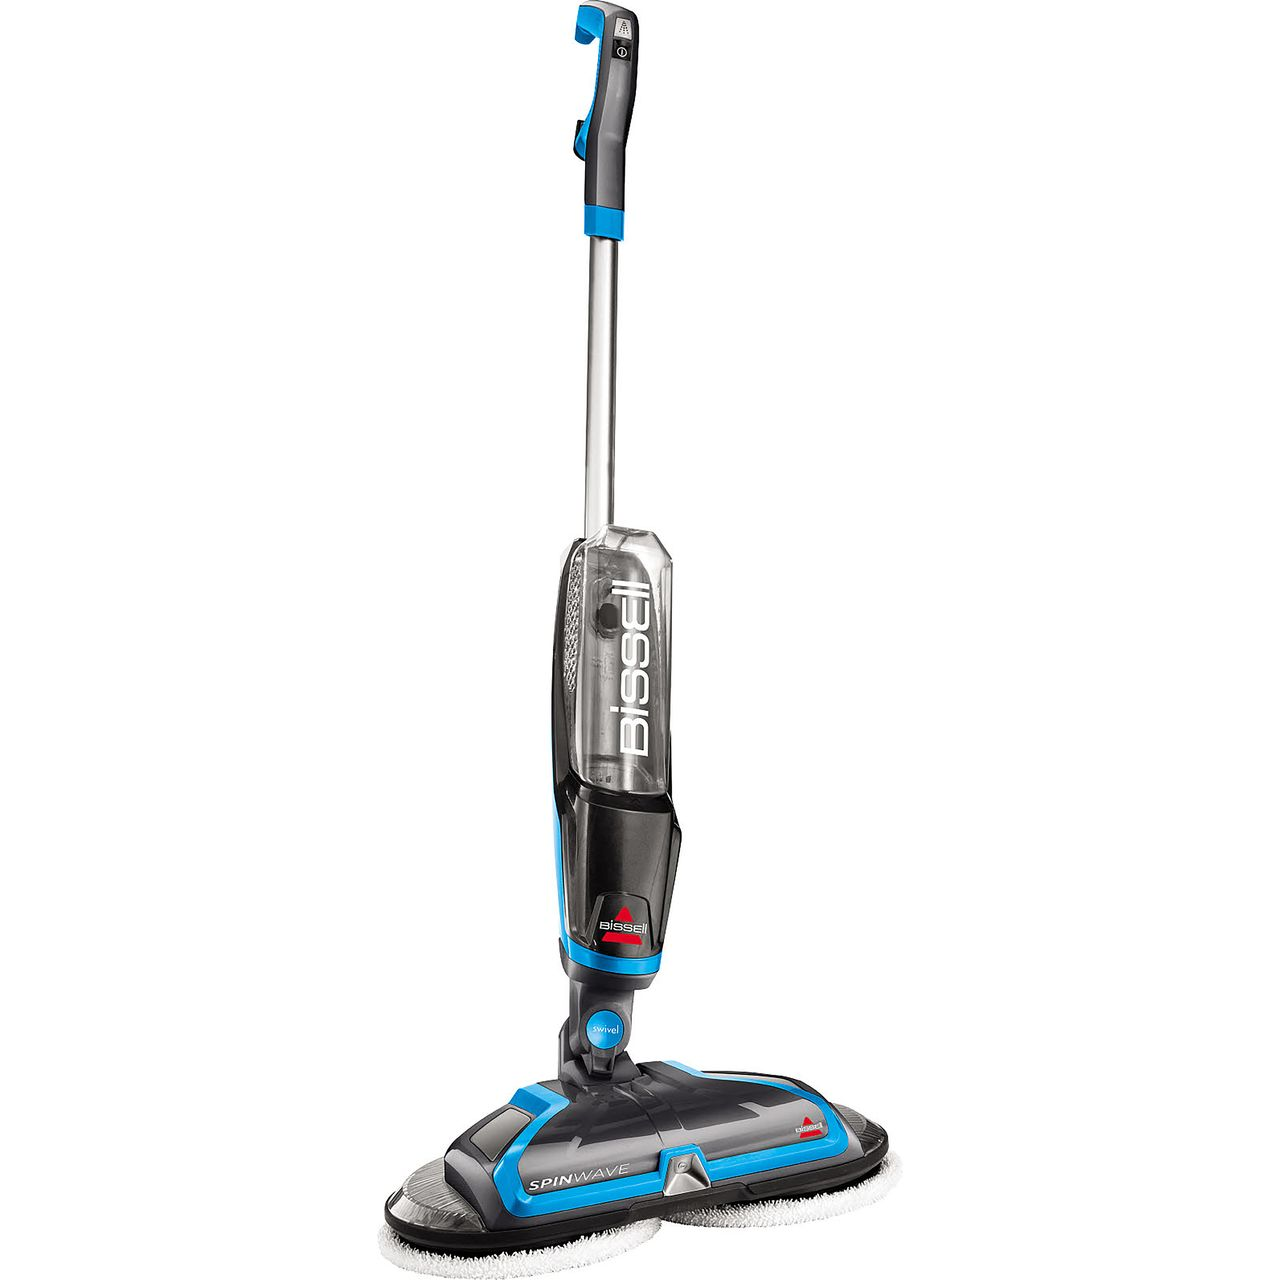 2052e Tib Bissell Hard Floor Cleaner Ao Com